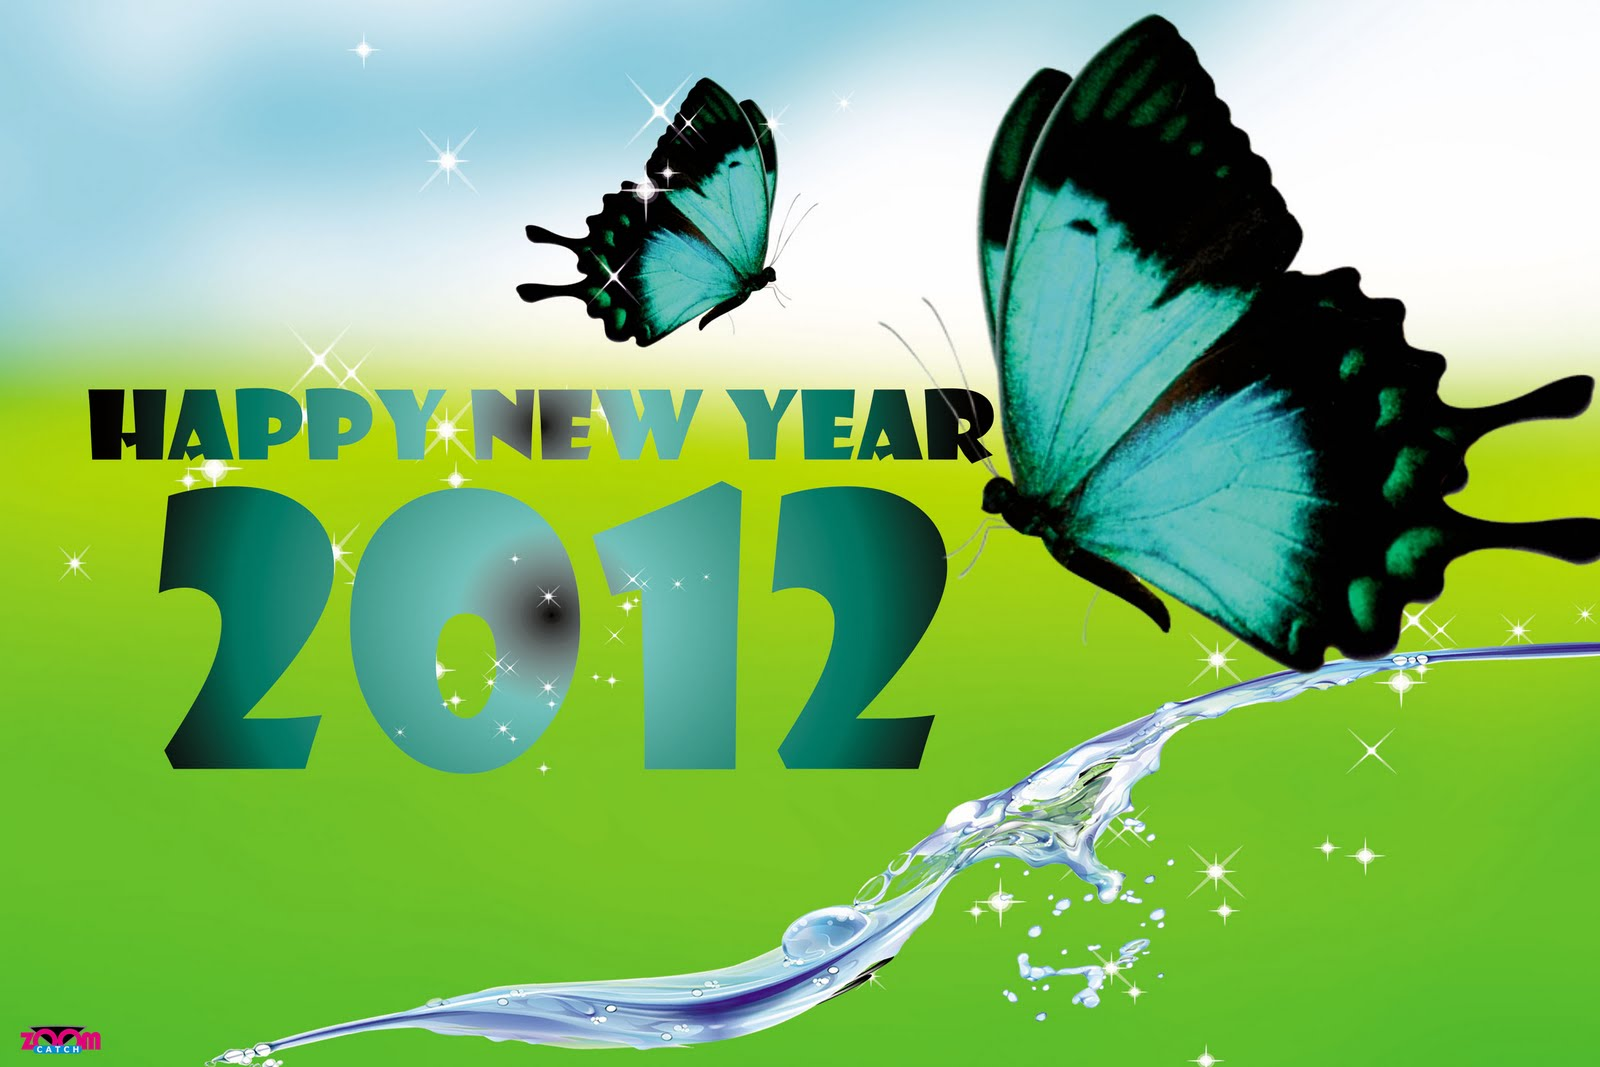 happy new year 2012 happy new year 2012 happy new. 1600 x 1067.Free Happy New Year Clip Art.com